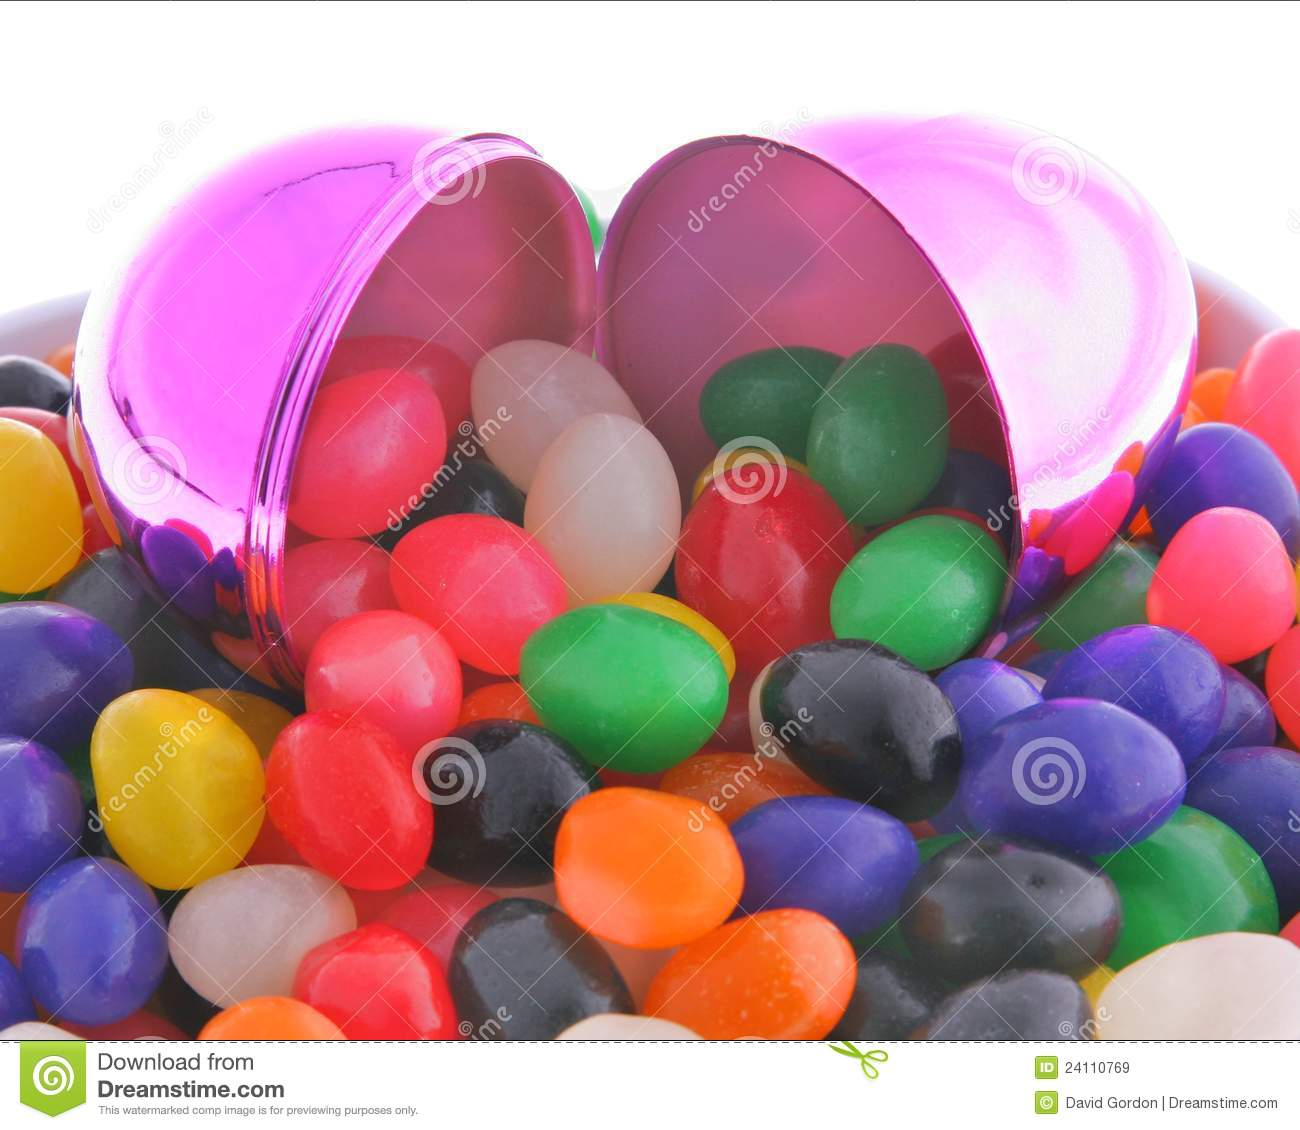 Iridescent Easter Egg And Jelly Beans Stock Image - Image of bean